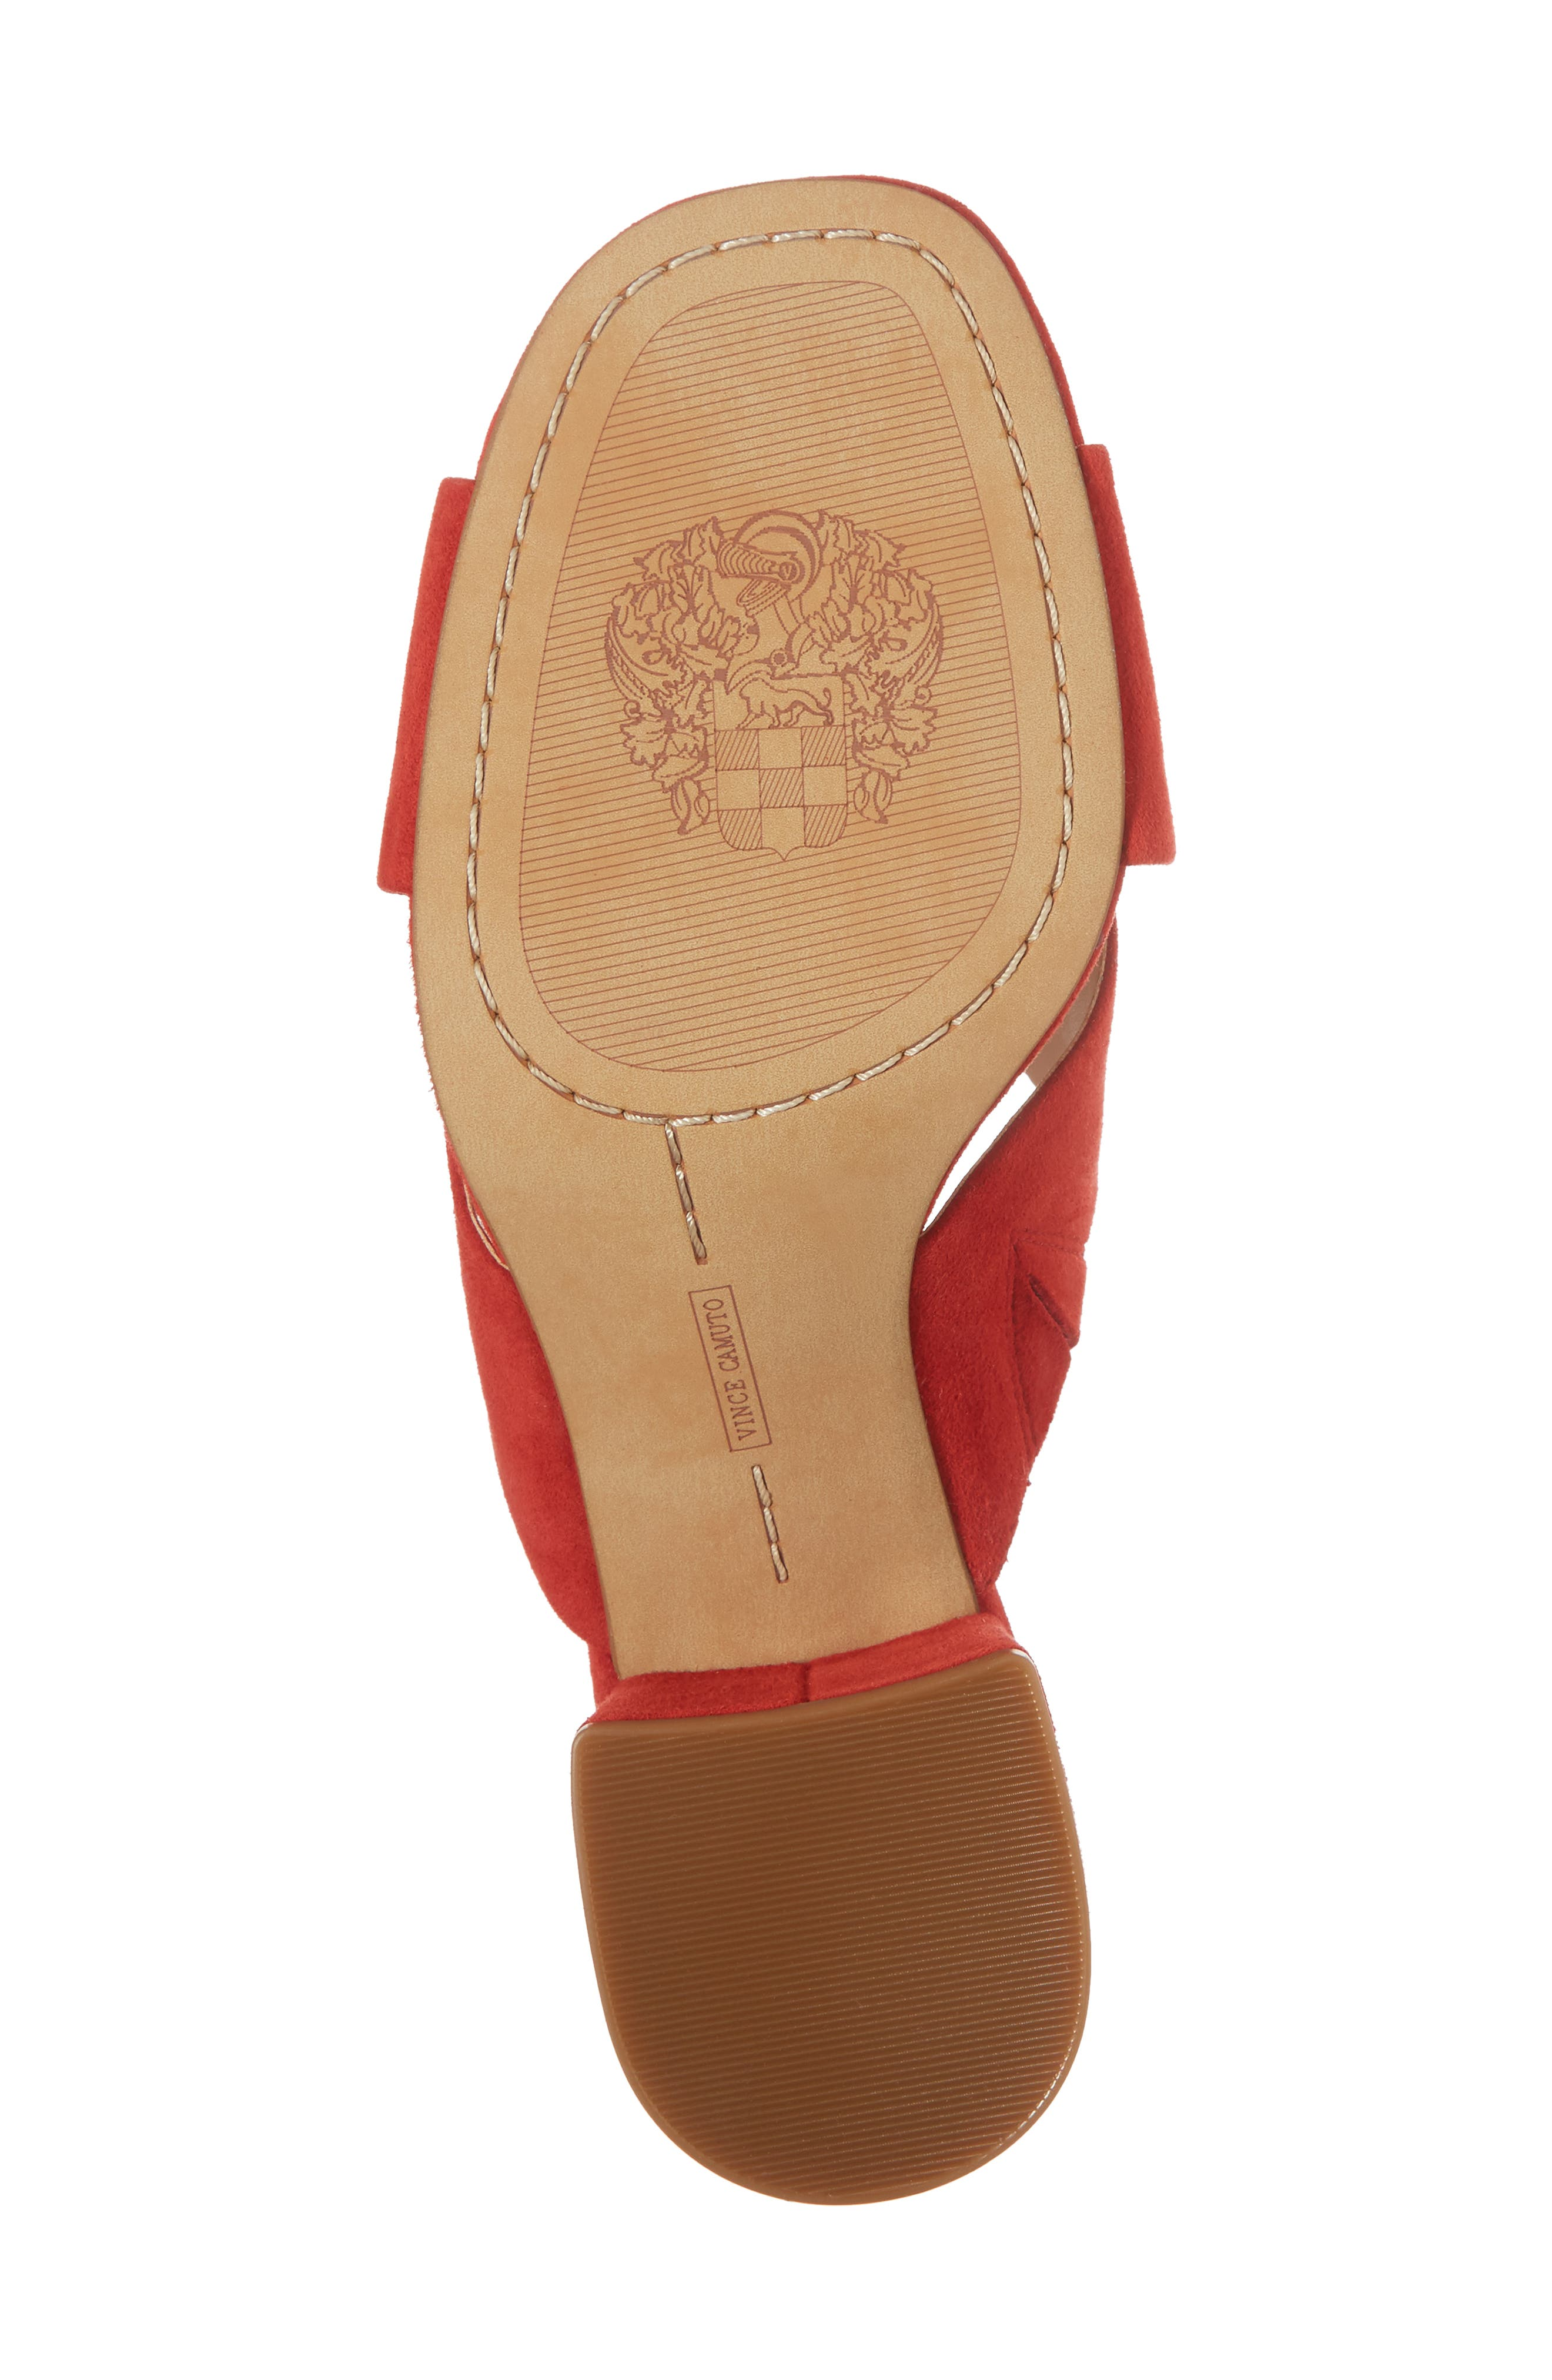 Stania Sandal,                             Alternate thumbnail 6, color,                             RED HOT RIO SUEDE